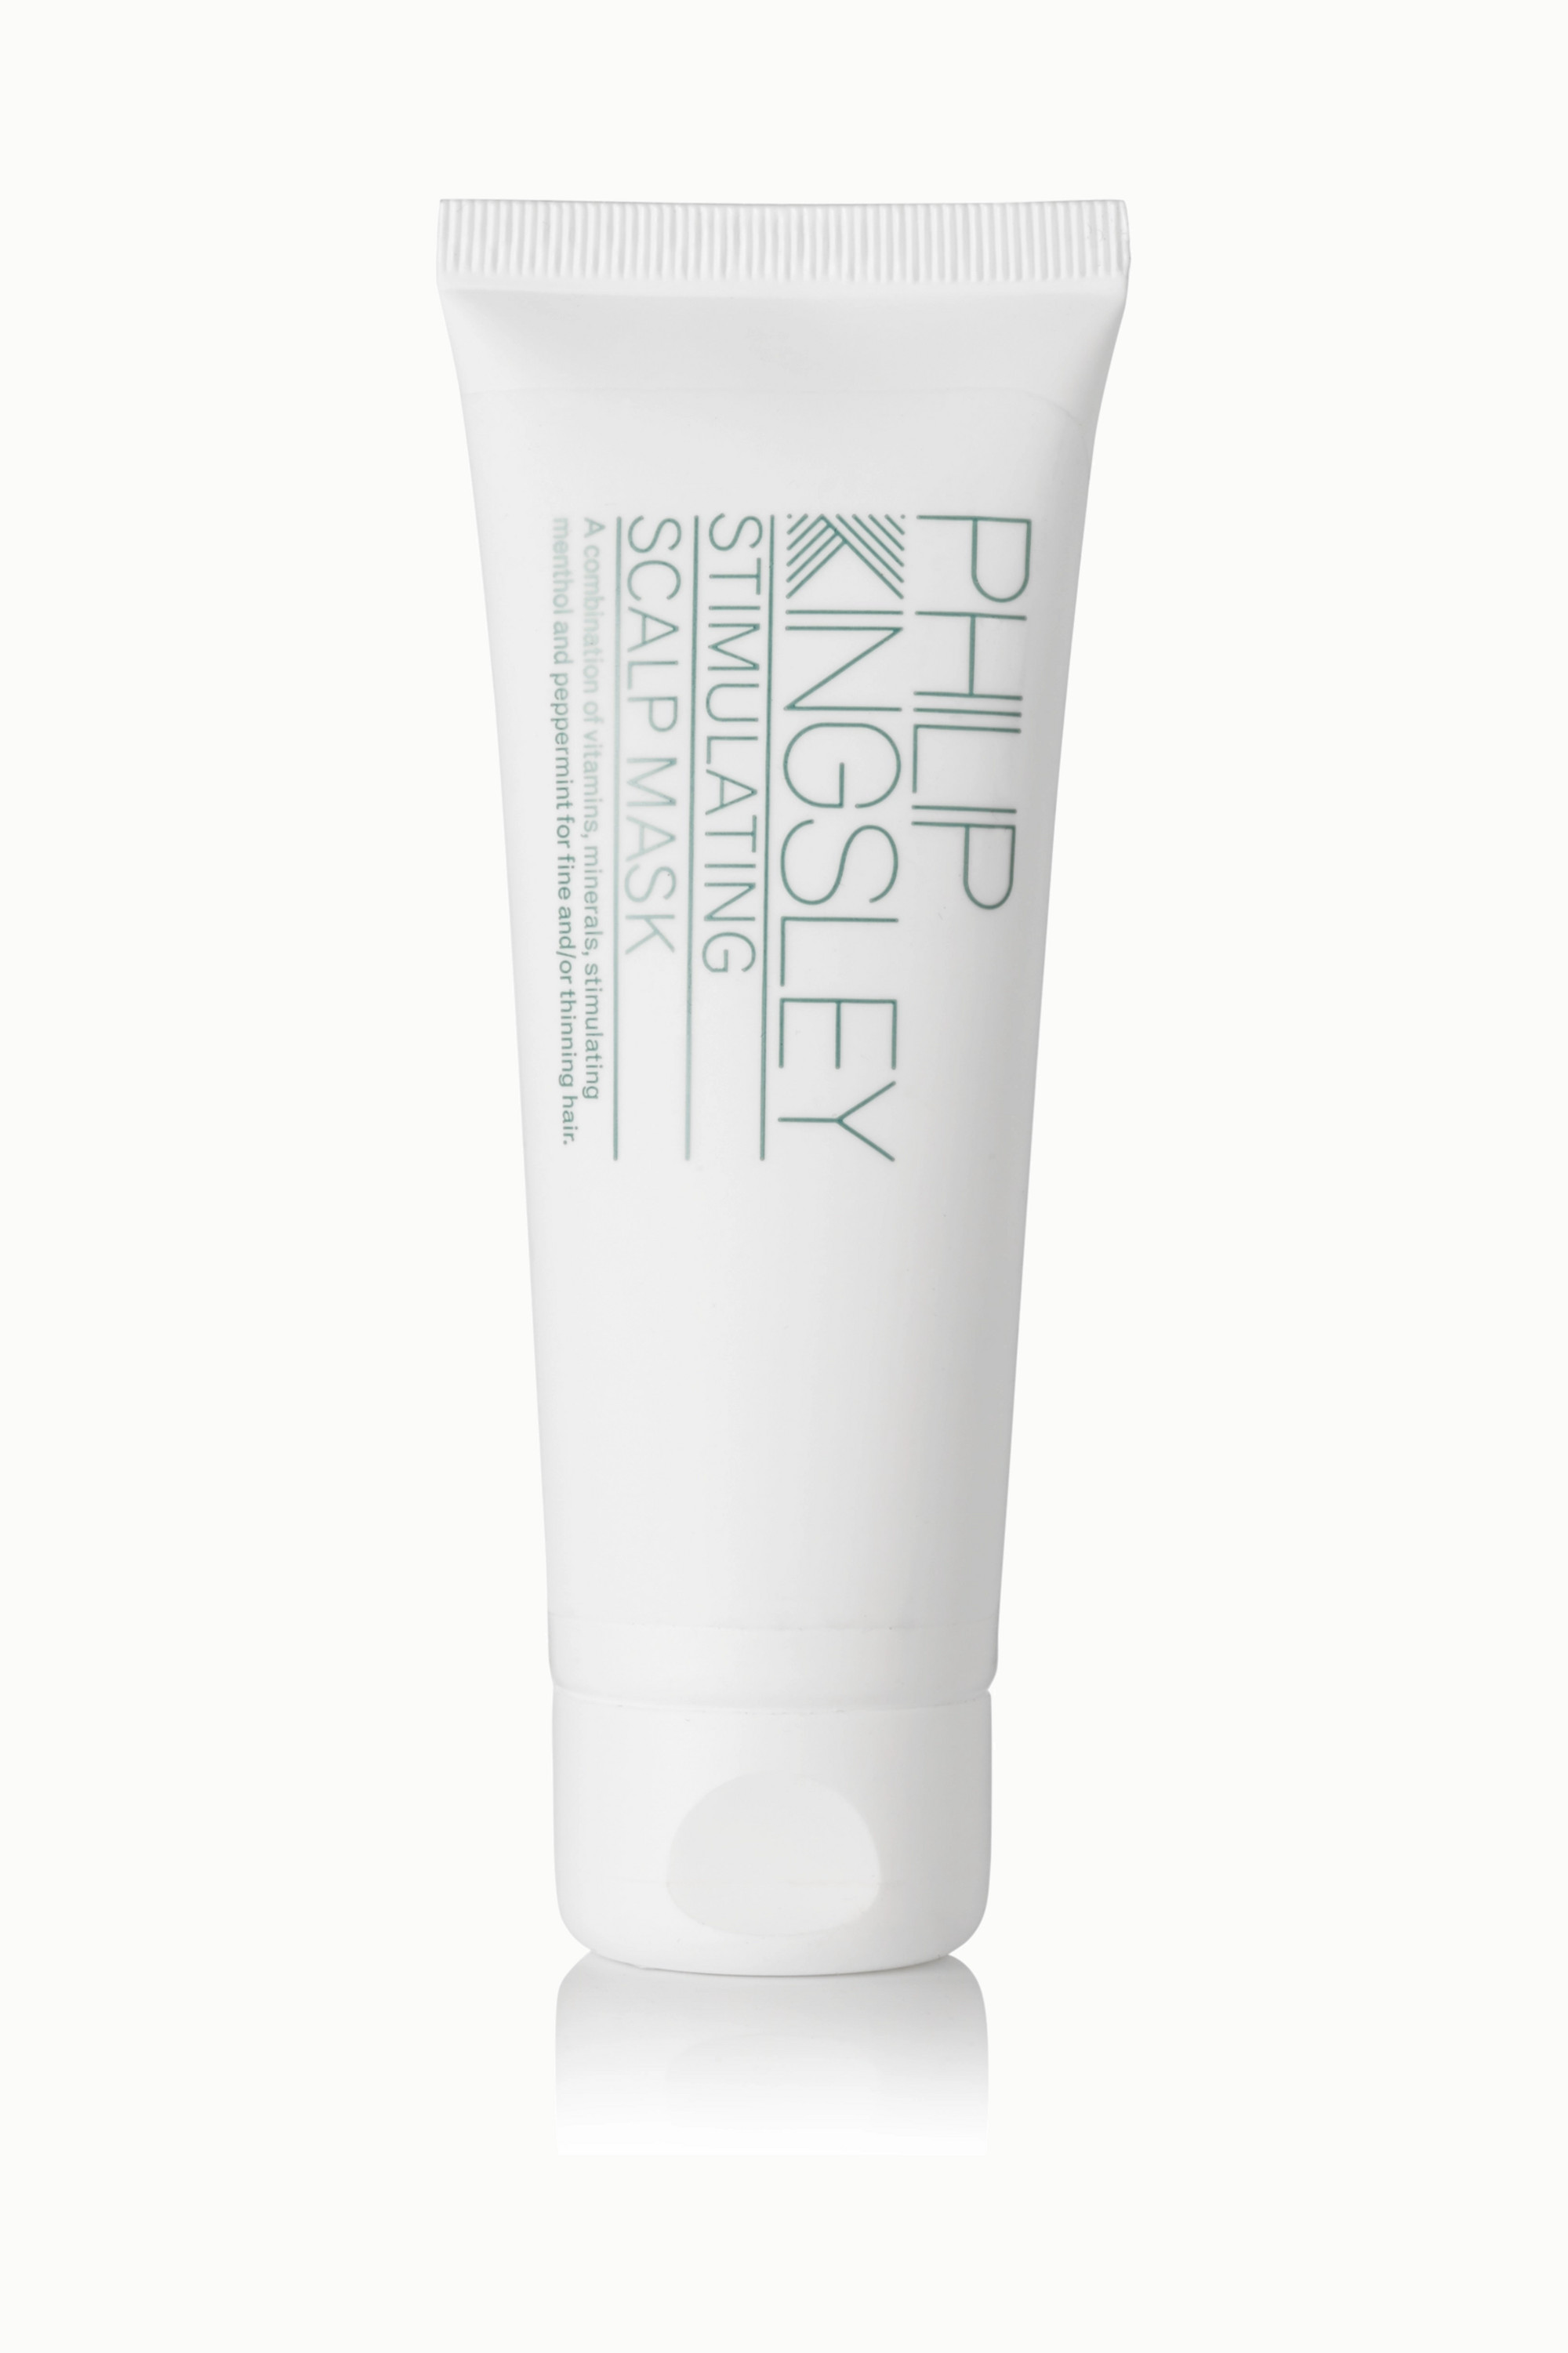 PHILIP KINGSLEY Stimulating Scalp Mask, 75ml